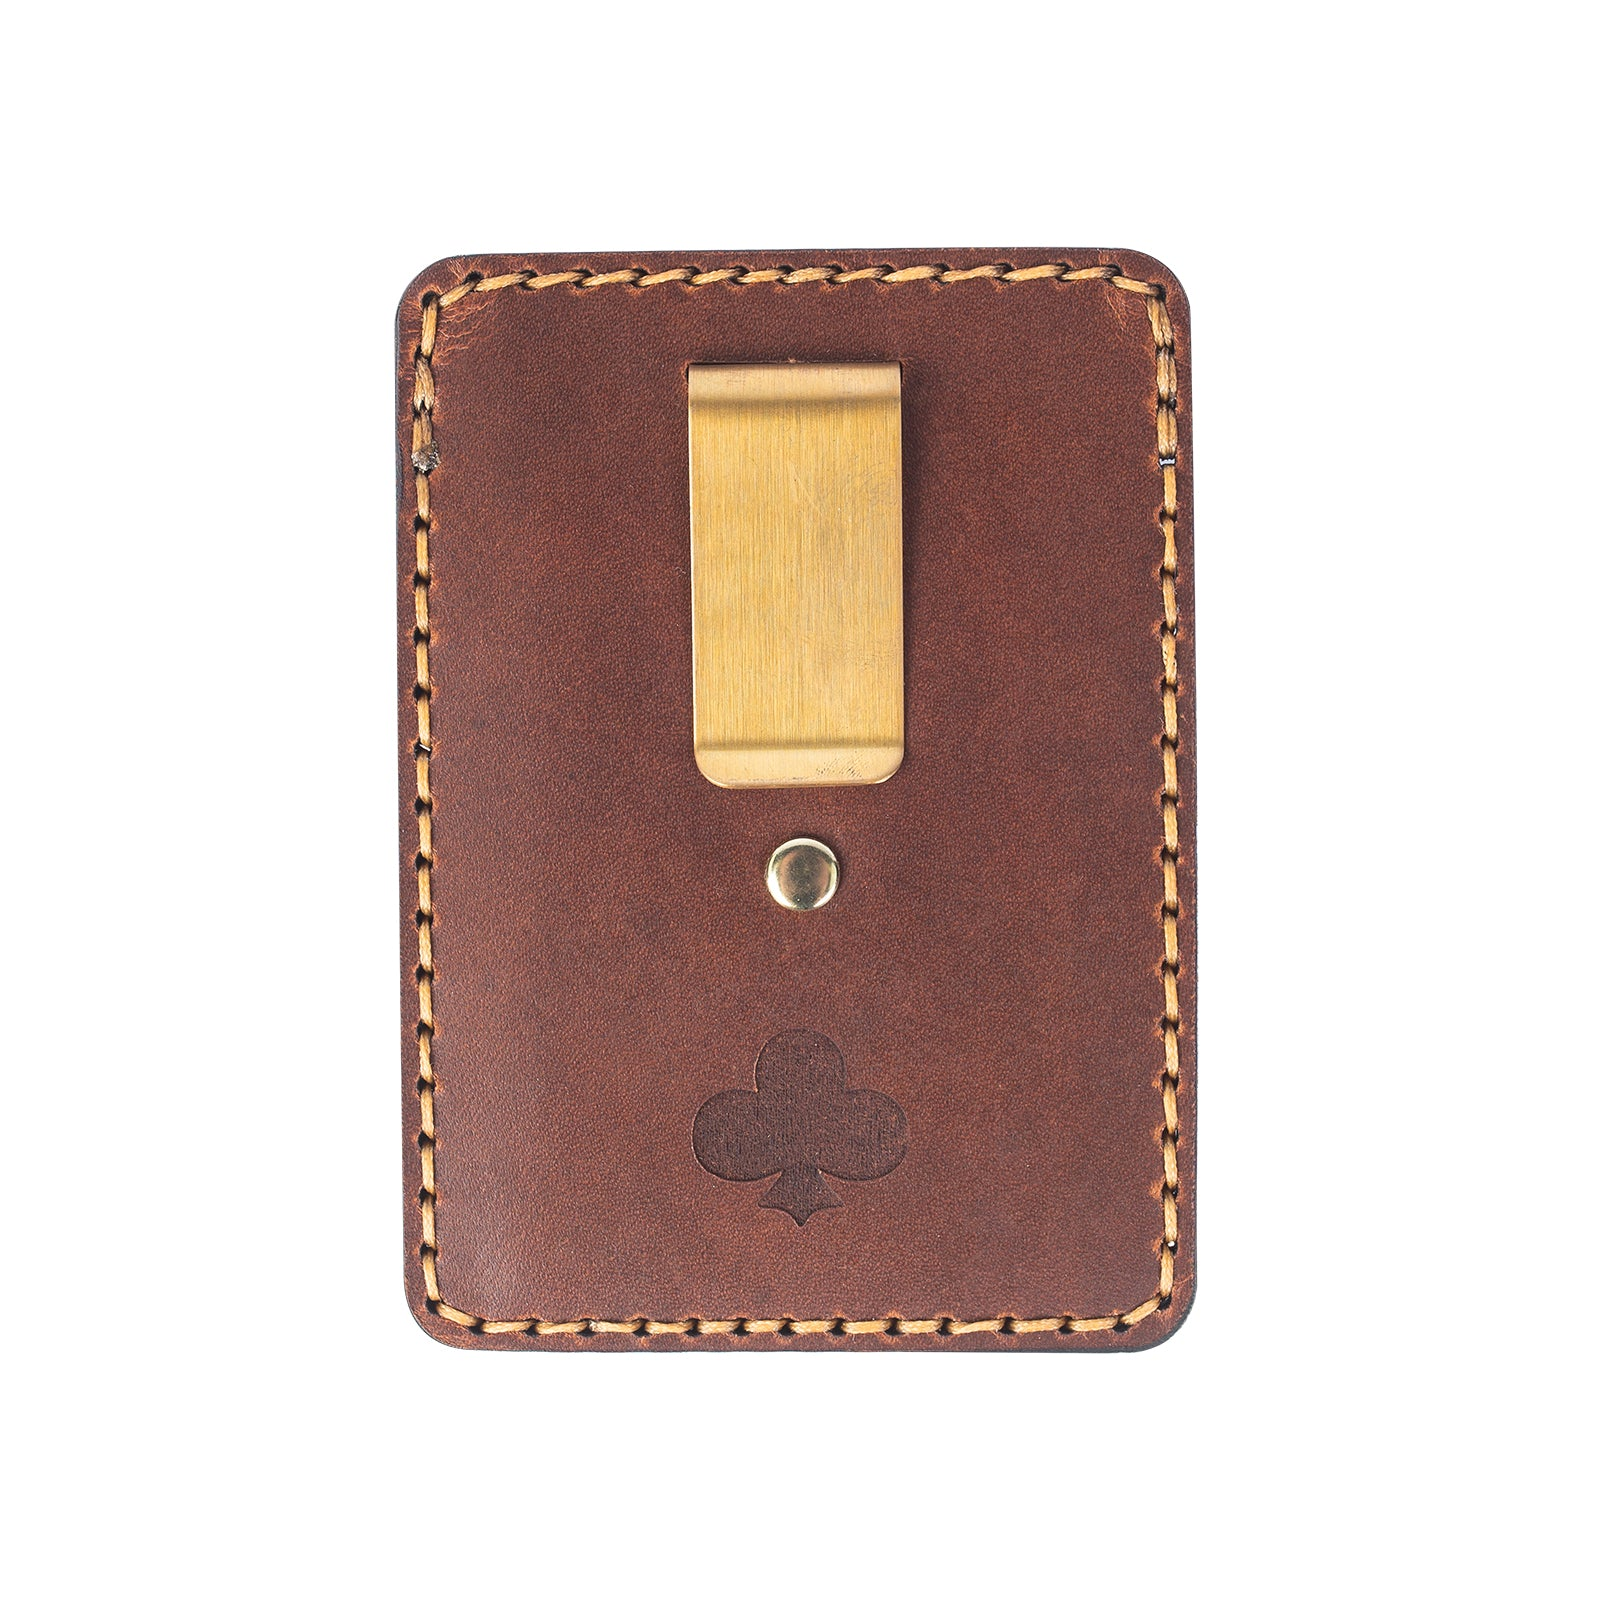 Leather Hemlock Card Wallet - Club Tattoo